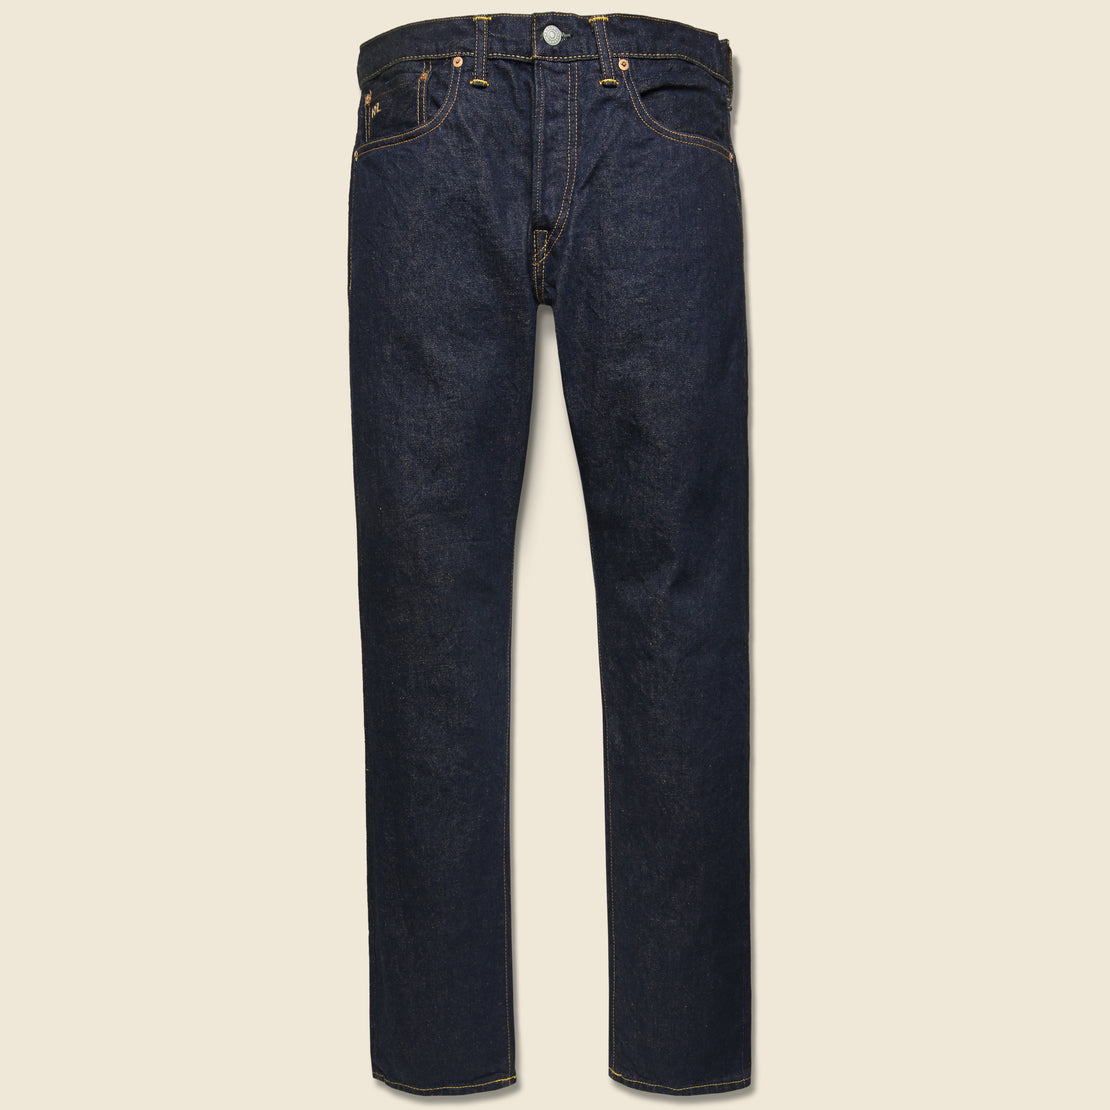 RRL Slim Fit Jean - Once Washed